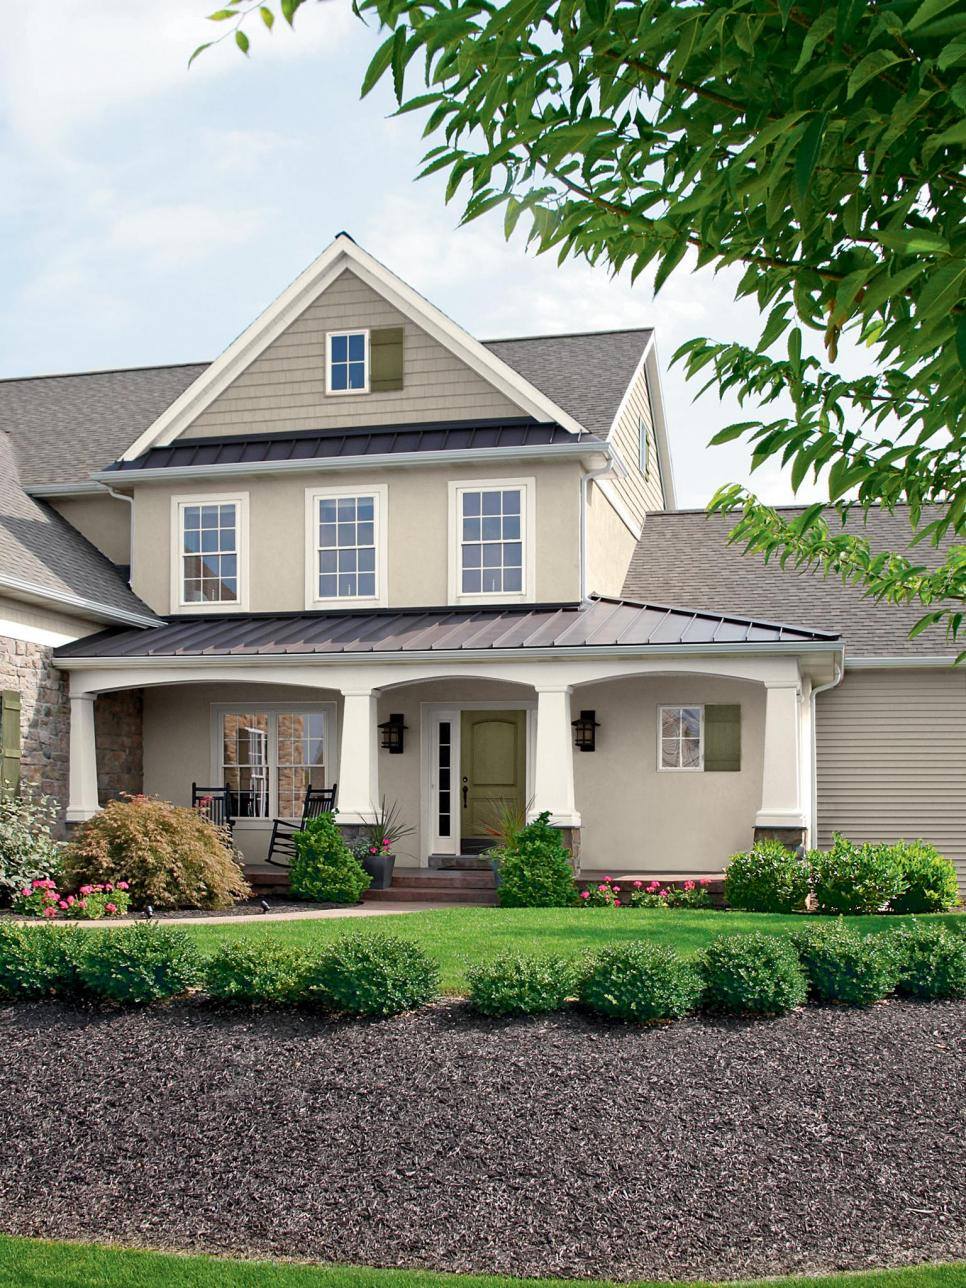 Modern Exterior Paint Colors For Houses Style Designs Page 26